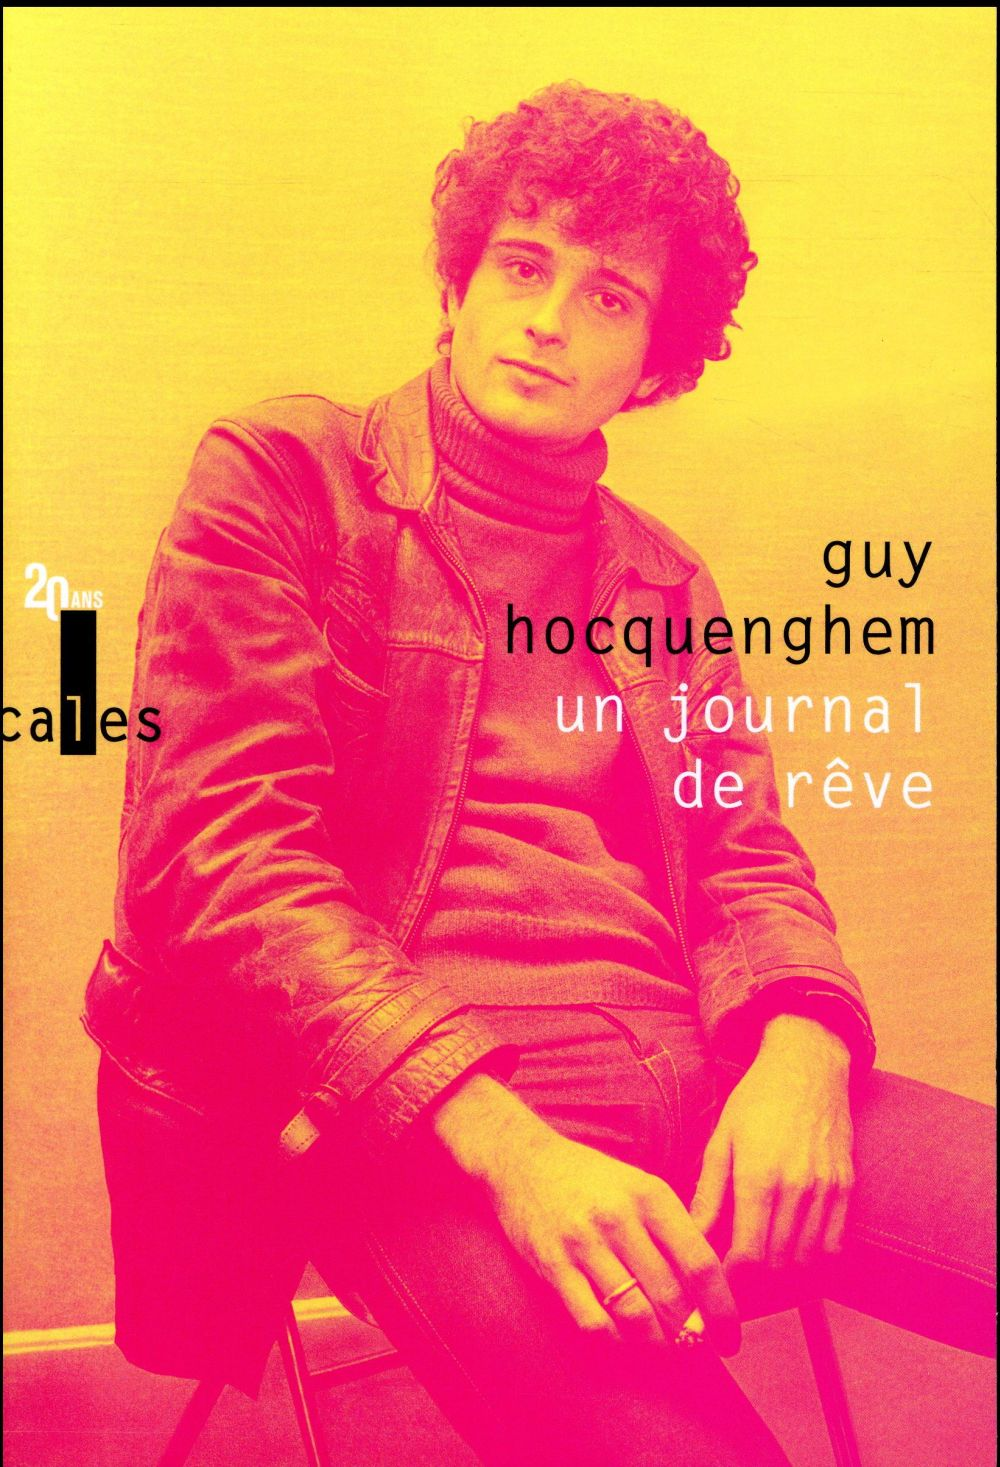 UN JOURNAL DE REVE